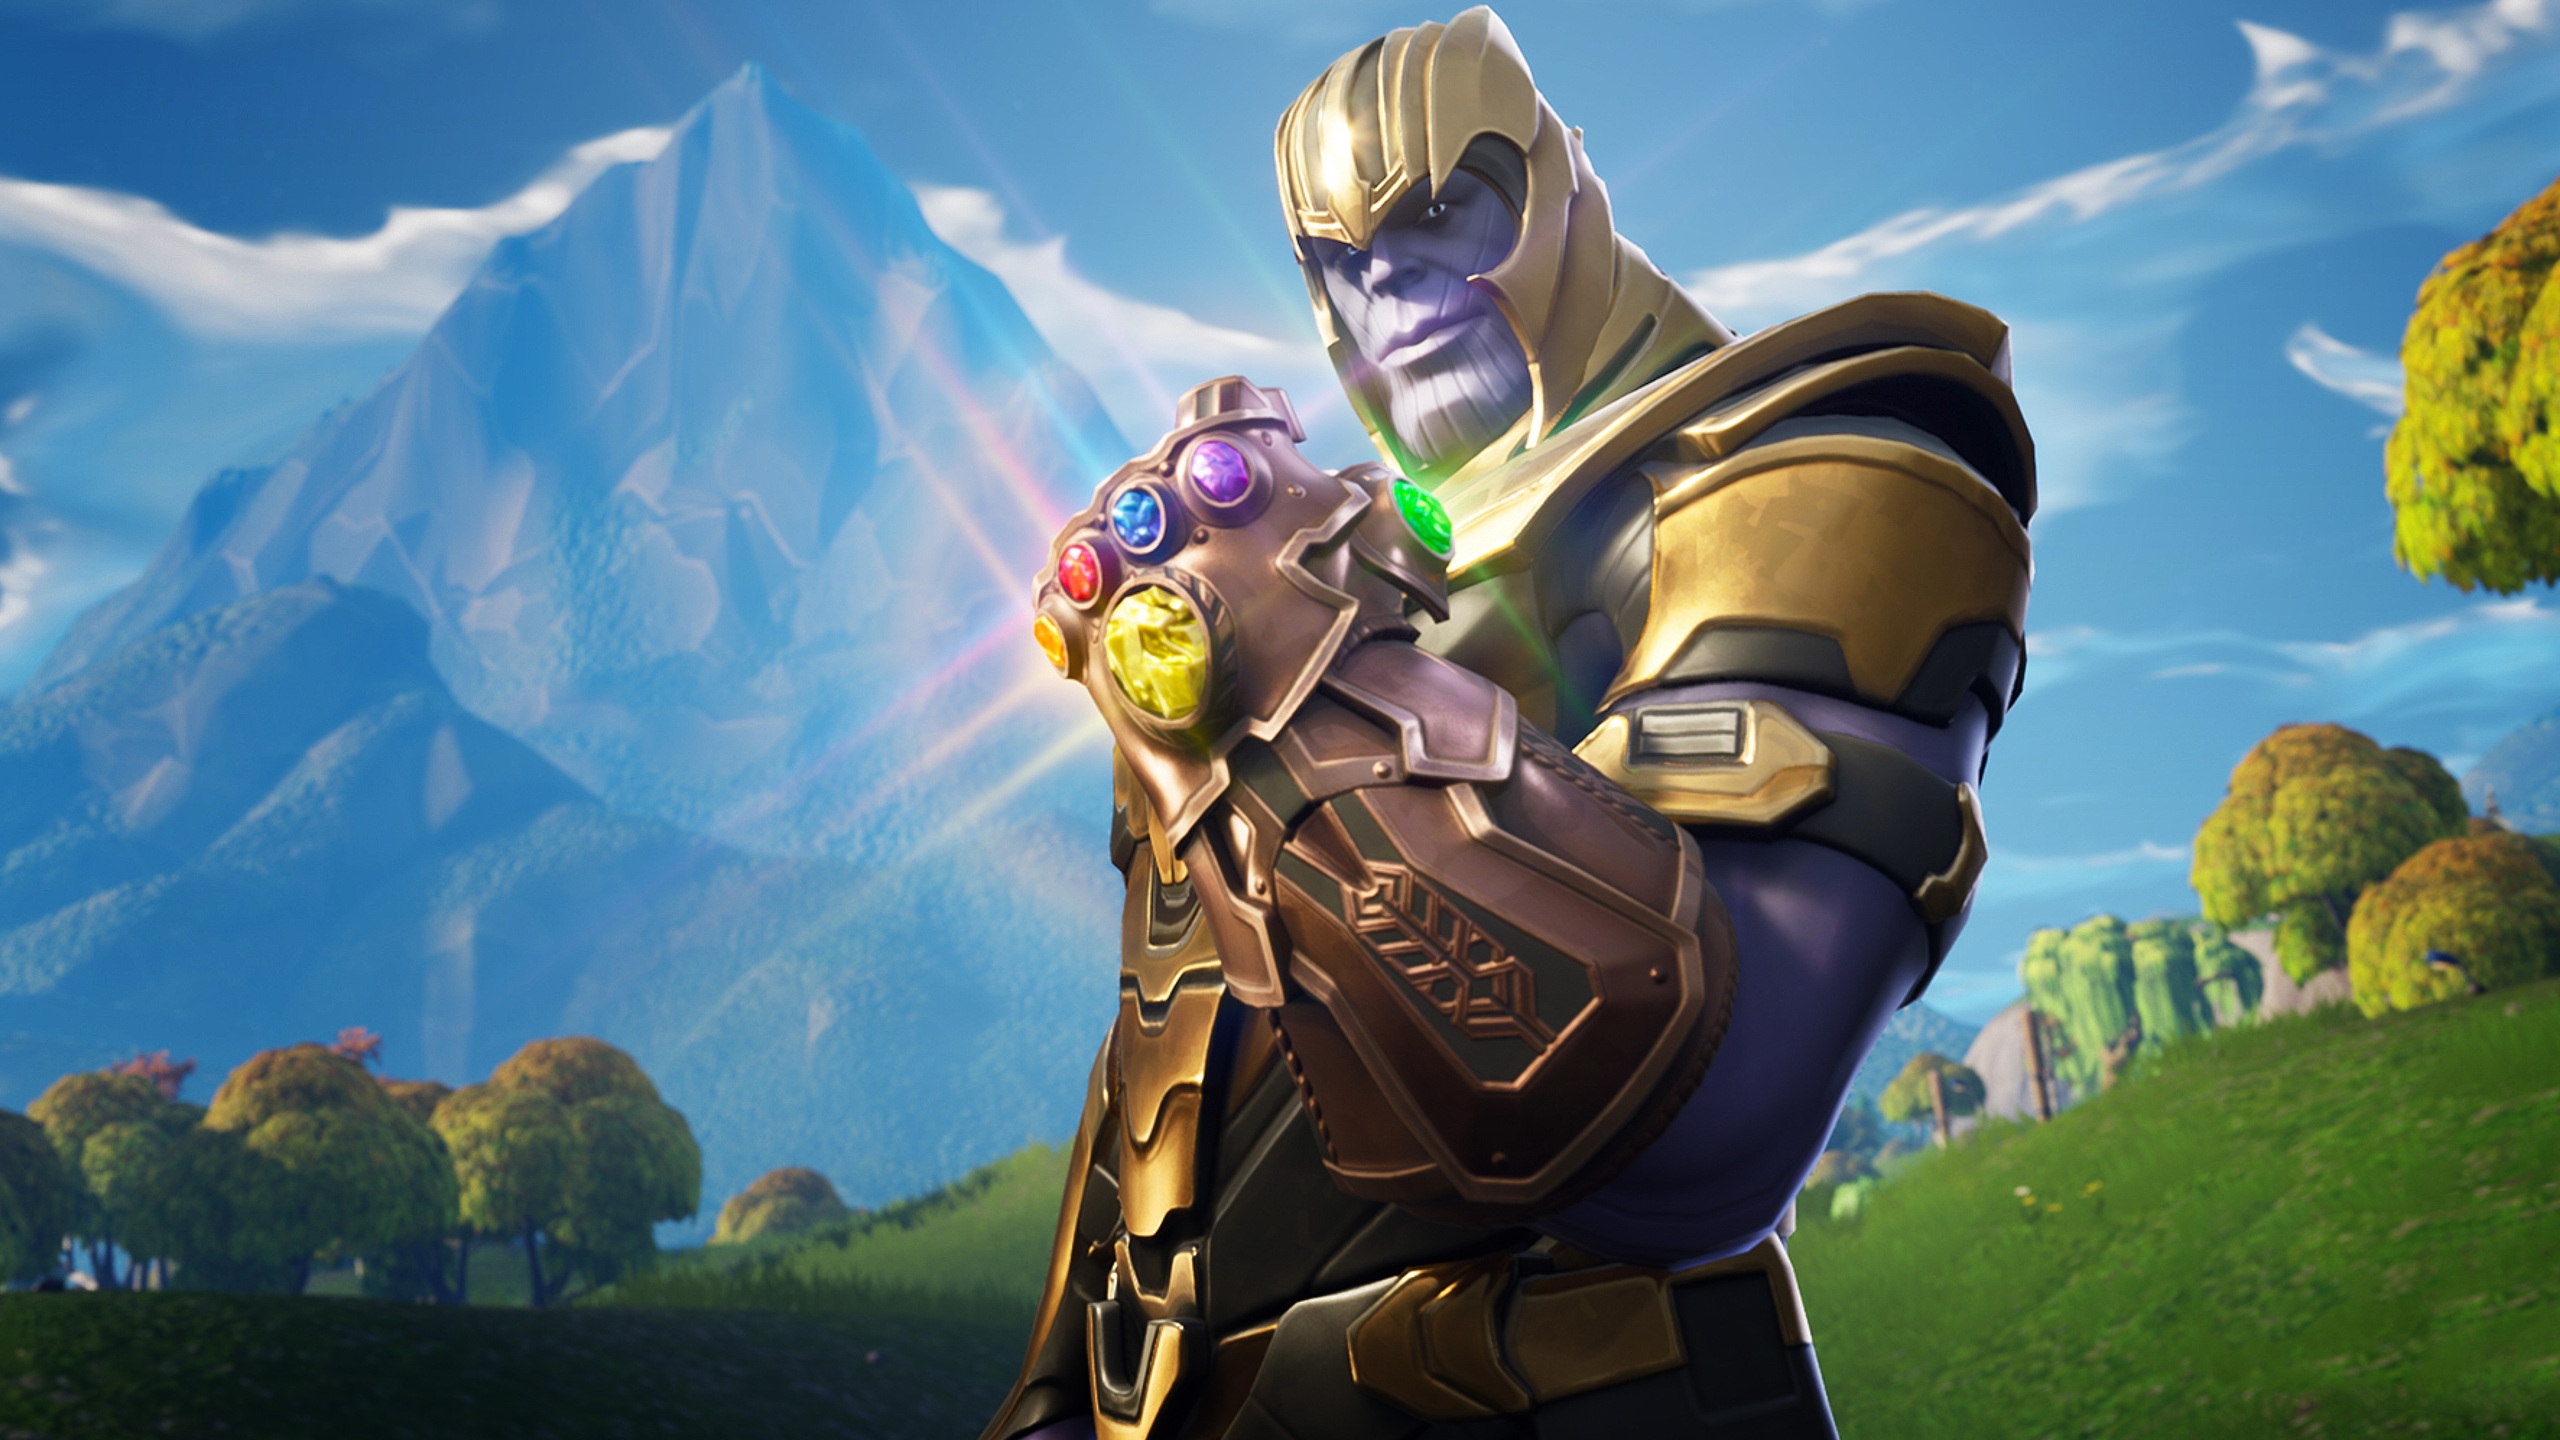 2560x1440 Thanos In Fortnite Battle Royale 1440p Resolution